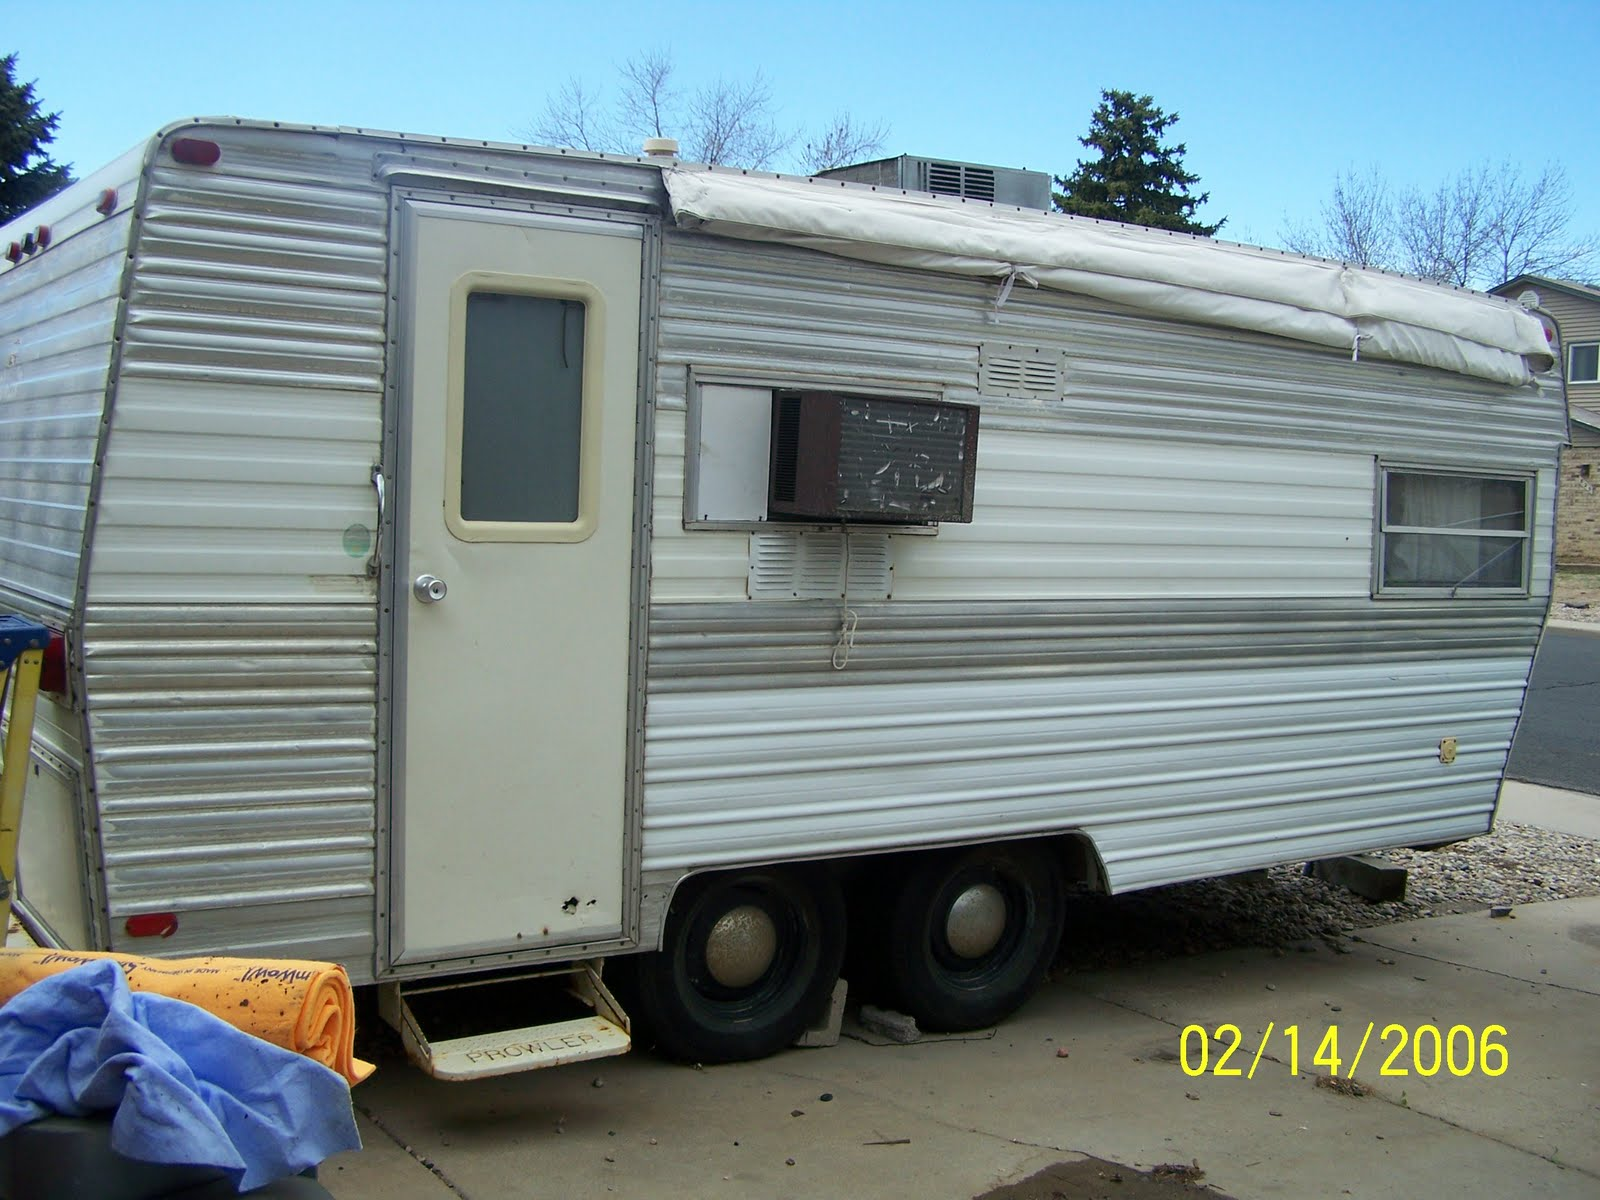 Getting Gazelle: 1972 Travel Trailer